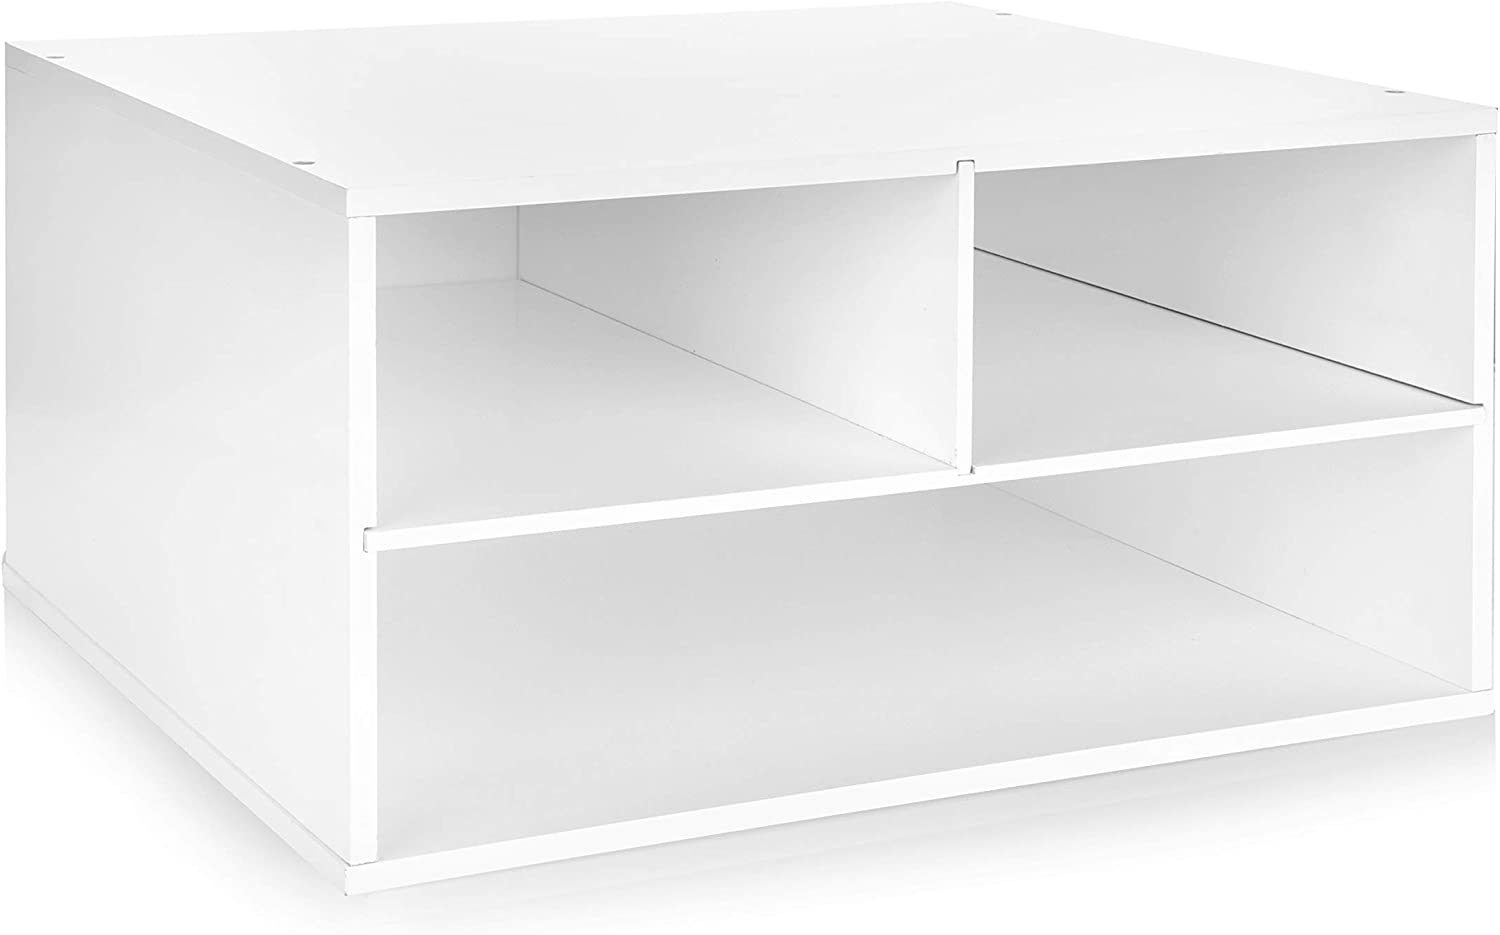 JulieHome Wood Two-Tier Printer Fax Stands Shelf Paper Organizer for Home Office,White